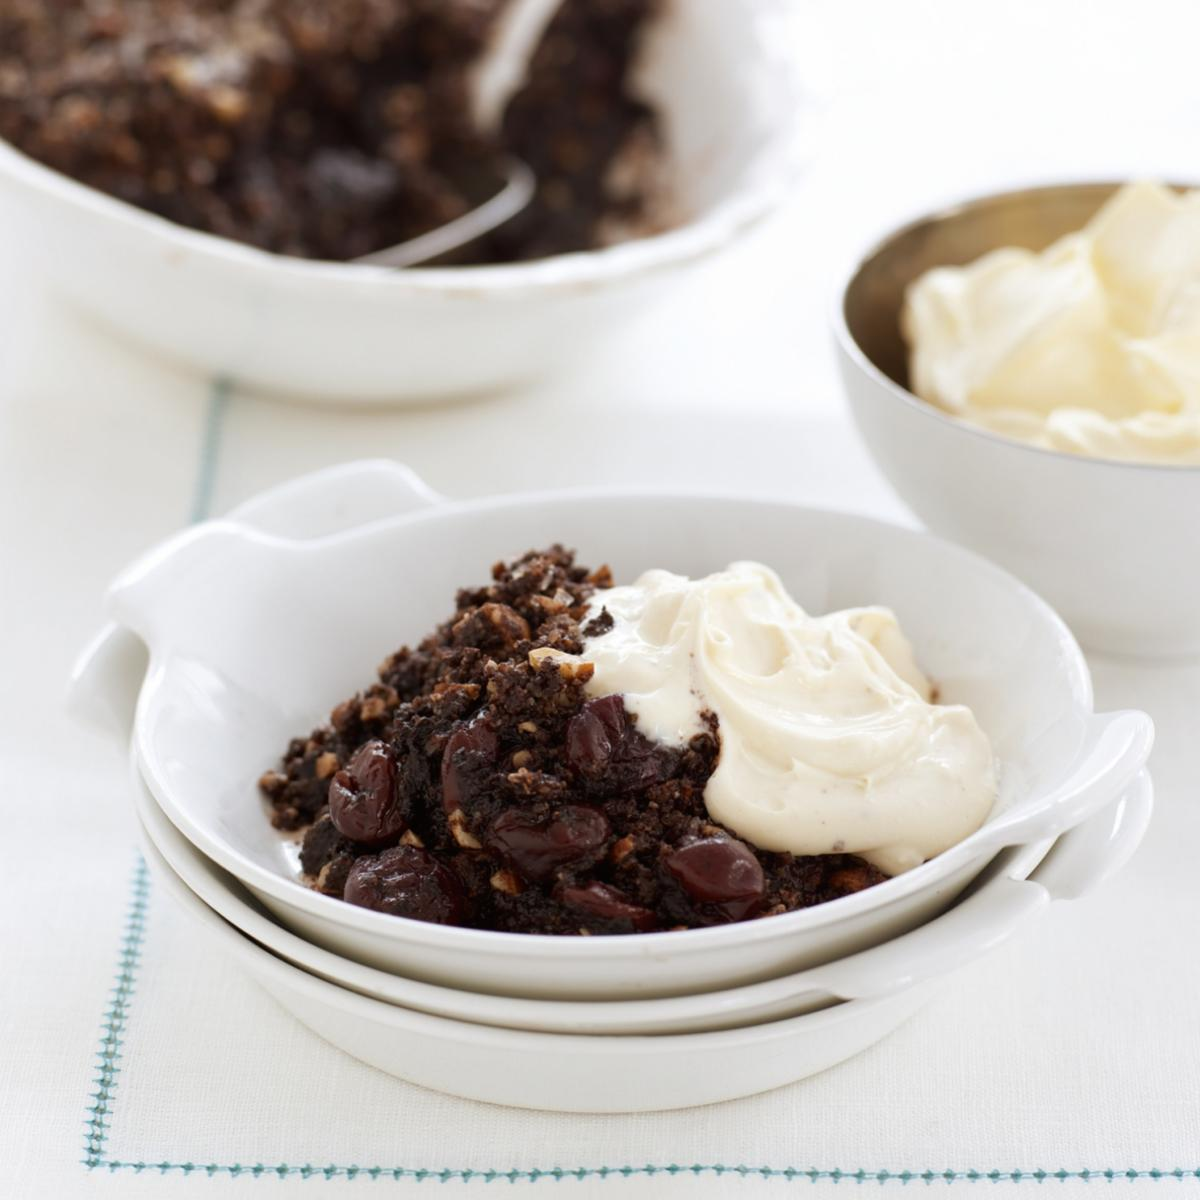 A picture of Delia's Chocolate and Sour Cherry Crumble recipe